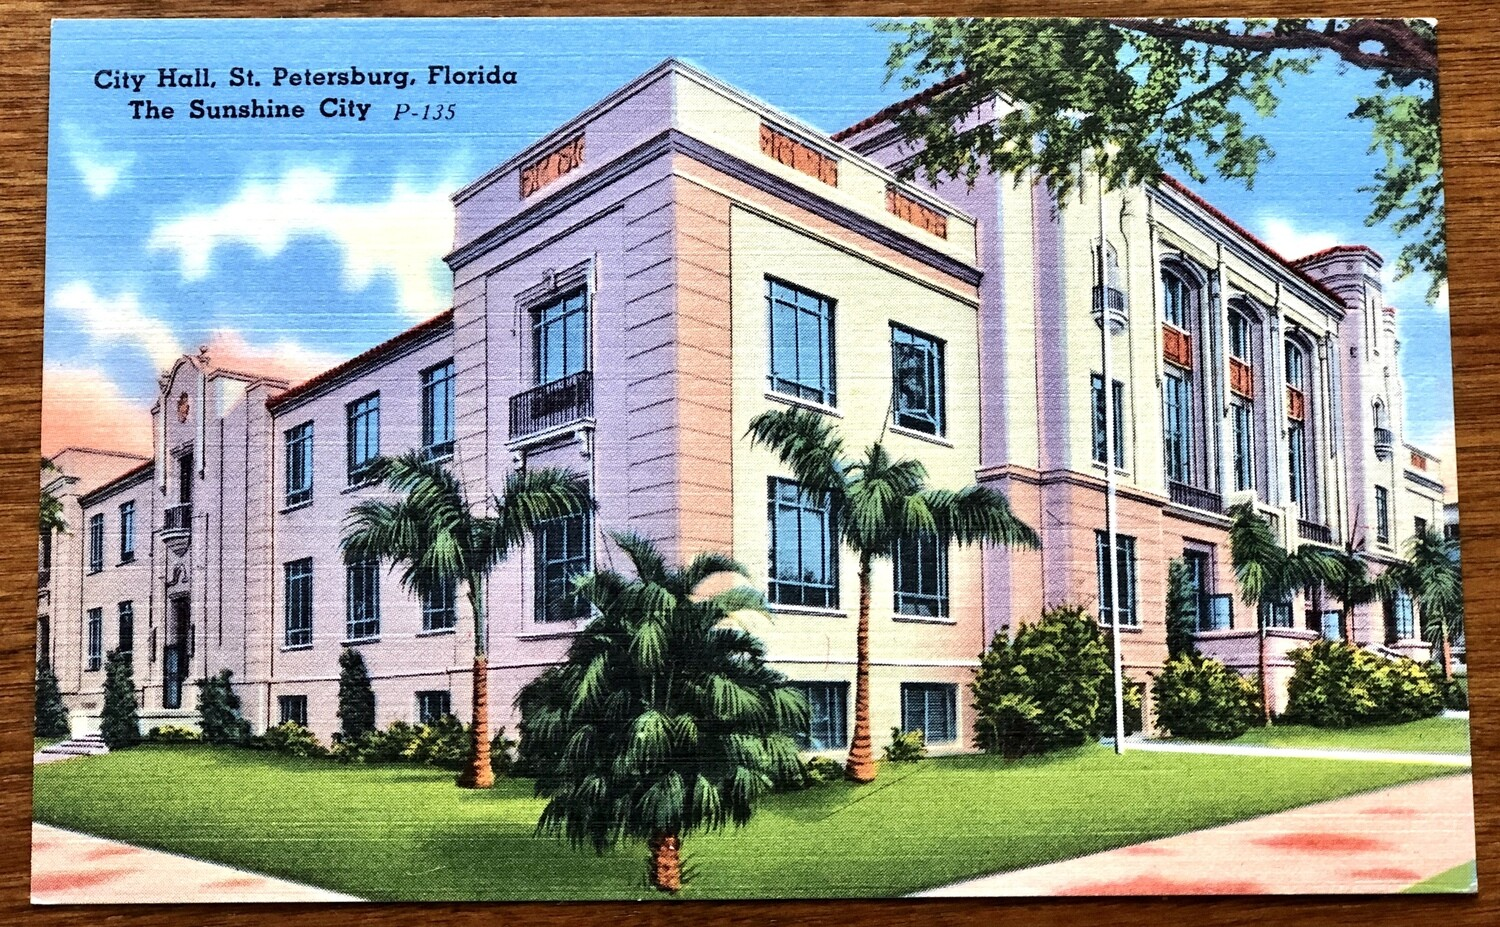 City Hall St. Petersburg Florida The Sunshine City